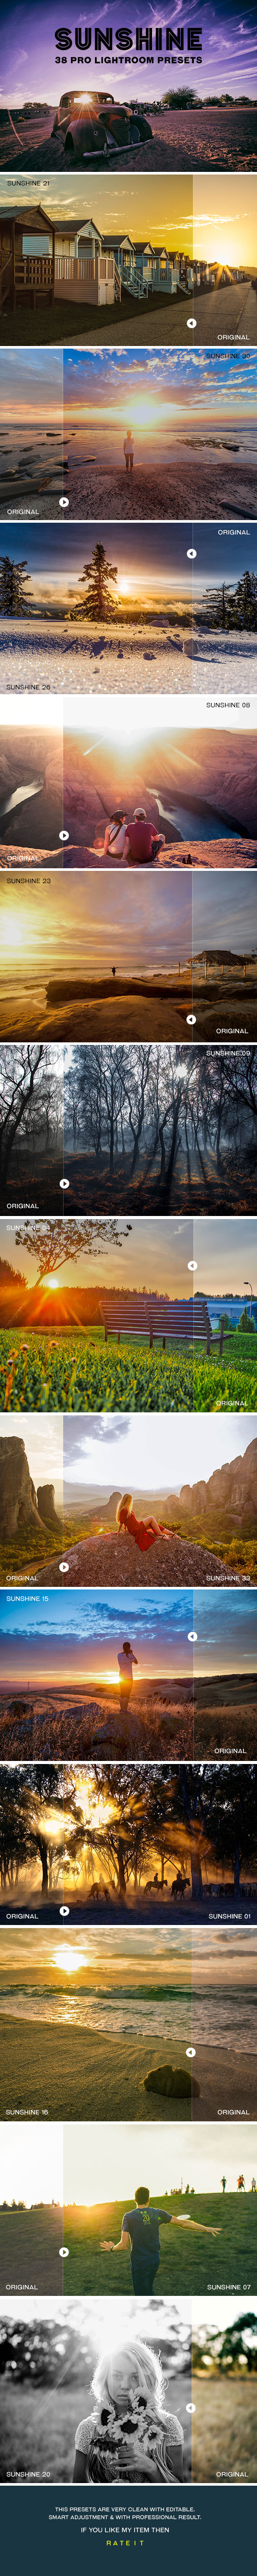 GraphicRiver Sunshine Landview Lightroom Presets 20320553